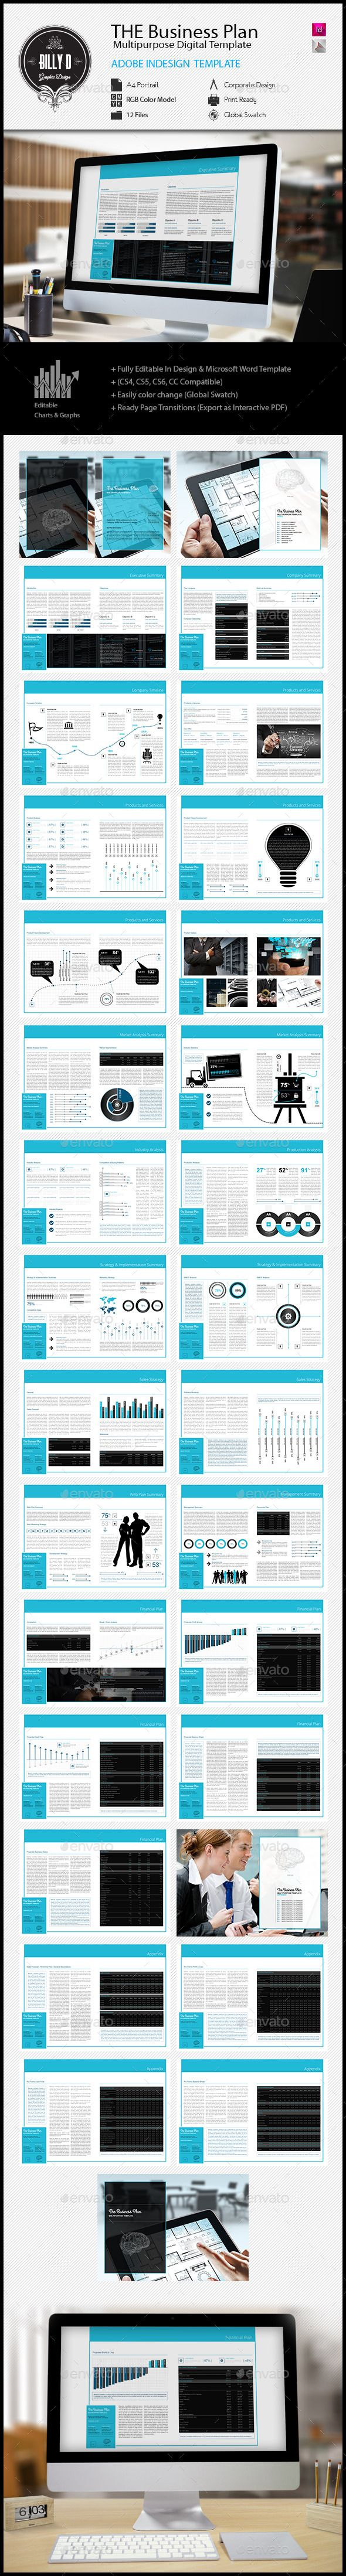 best ideas about business plan presentation preview this item here the business plan multipurpose digital template rgb page transitions export as